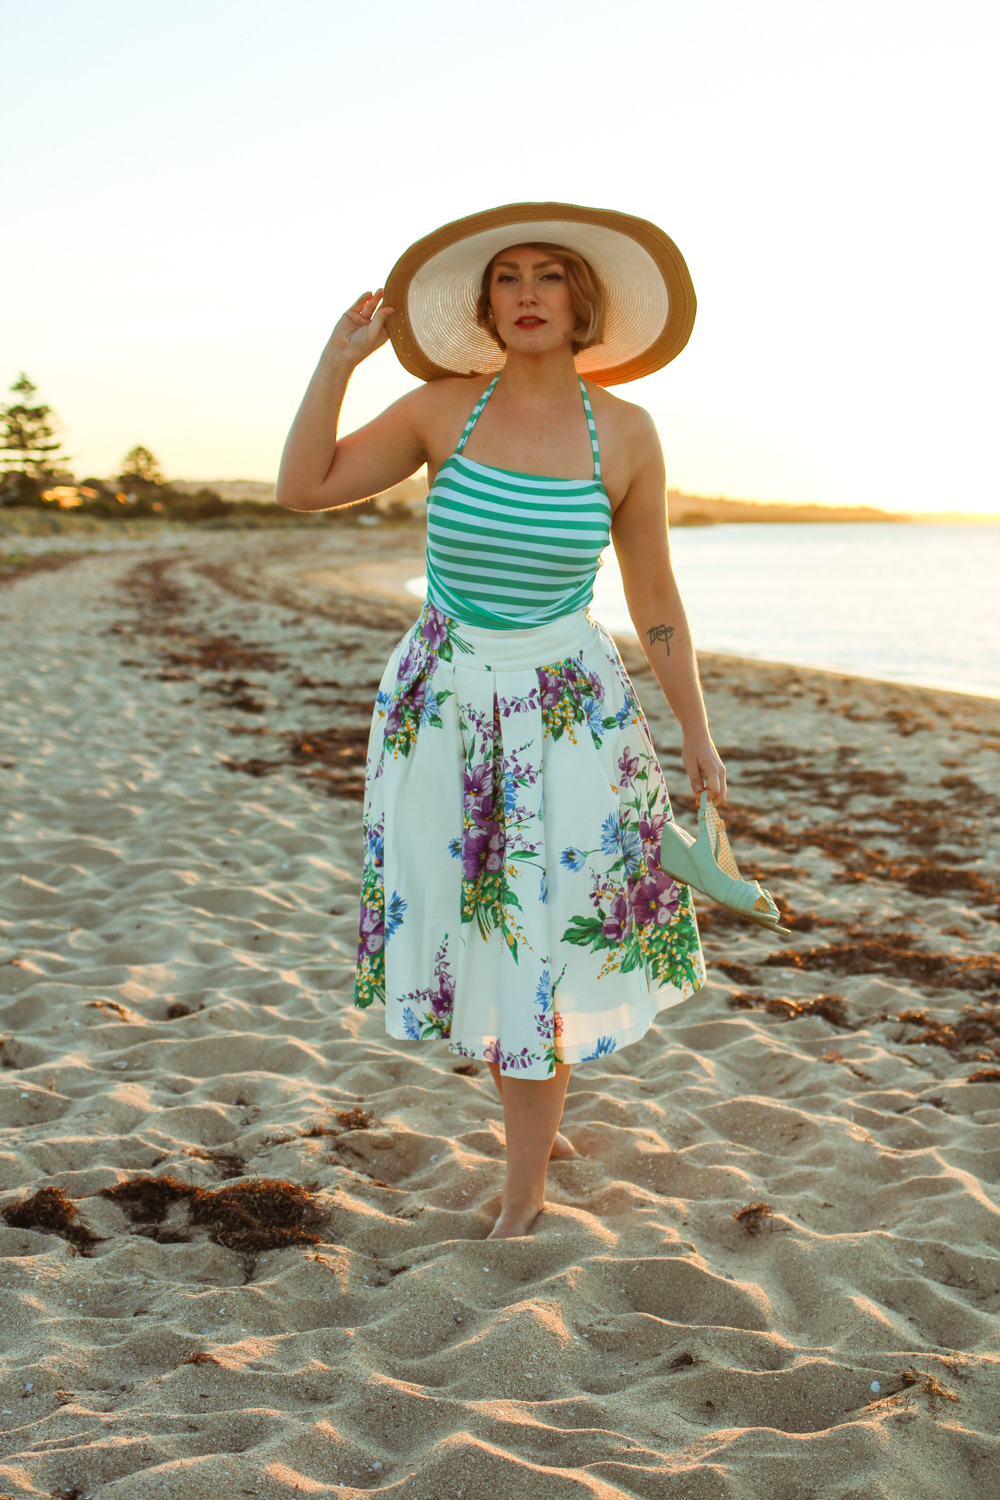 @findingfemme wears mint striped bathing suit and Review Australia floral midi skirt with broad hat at the beach.